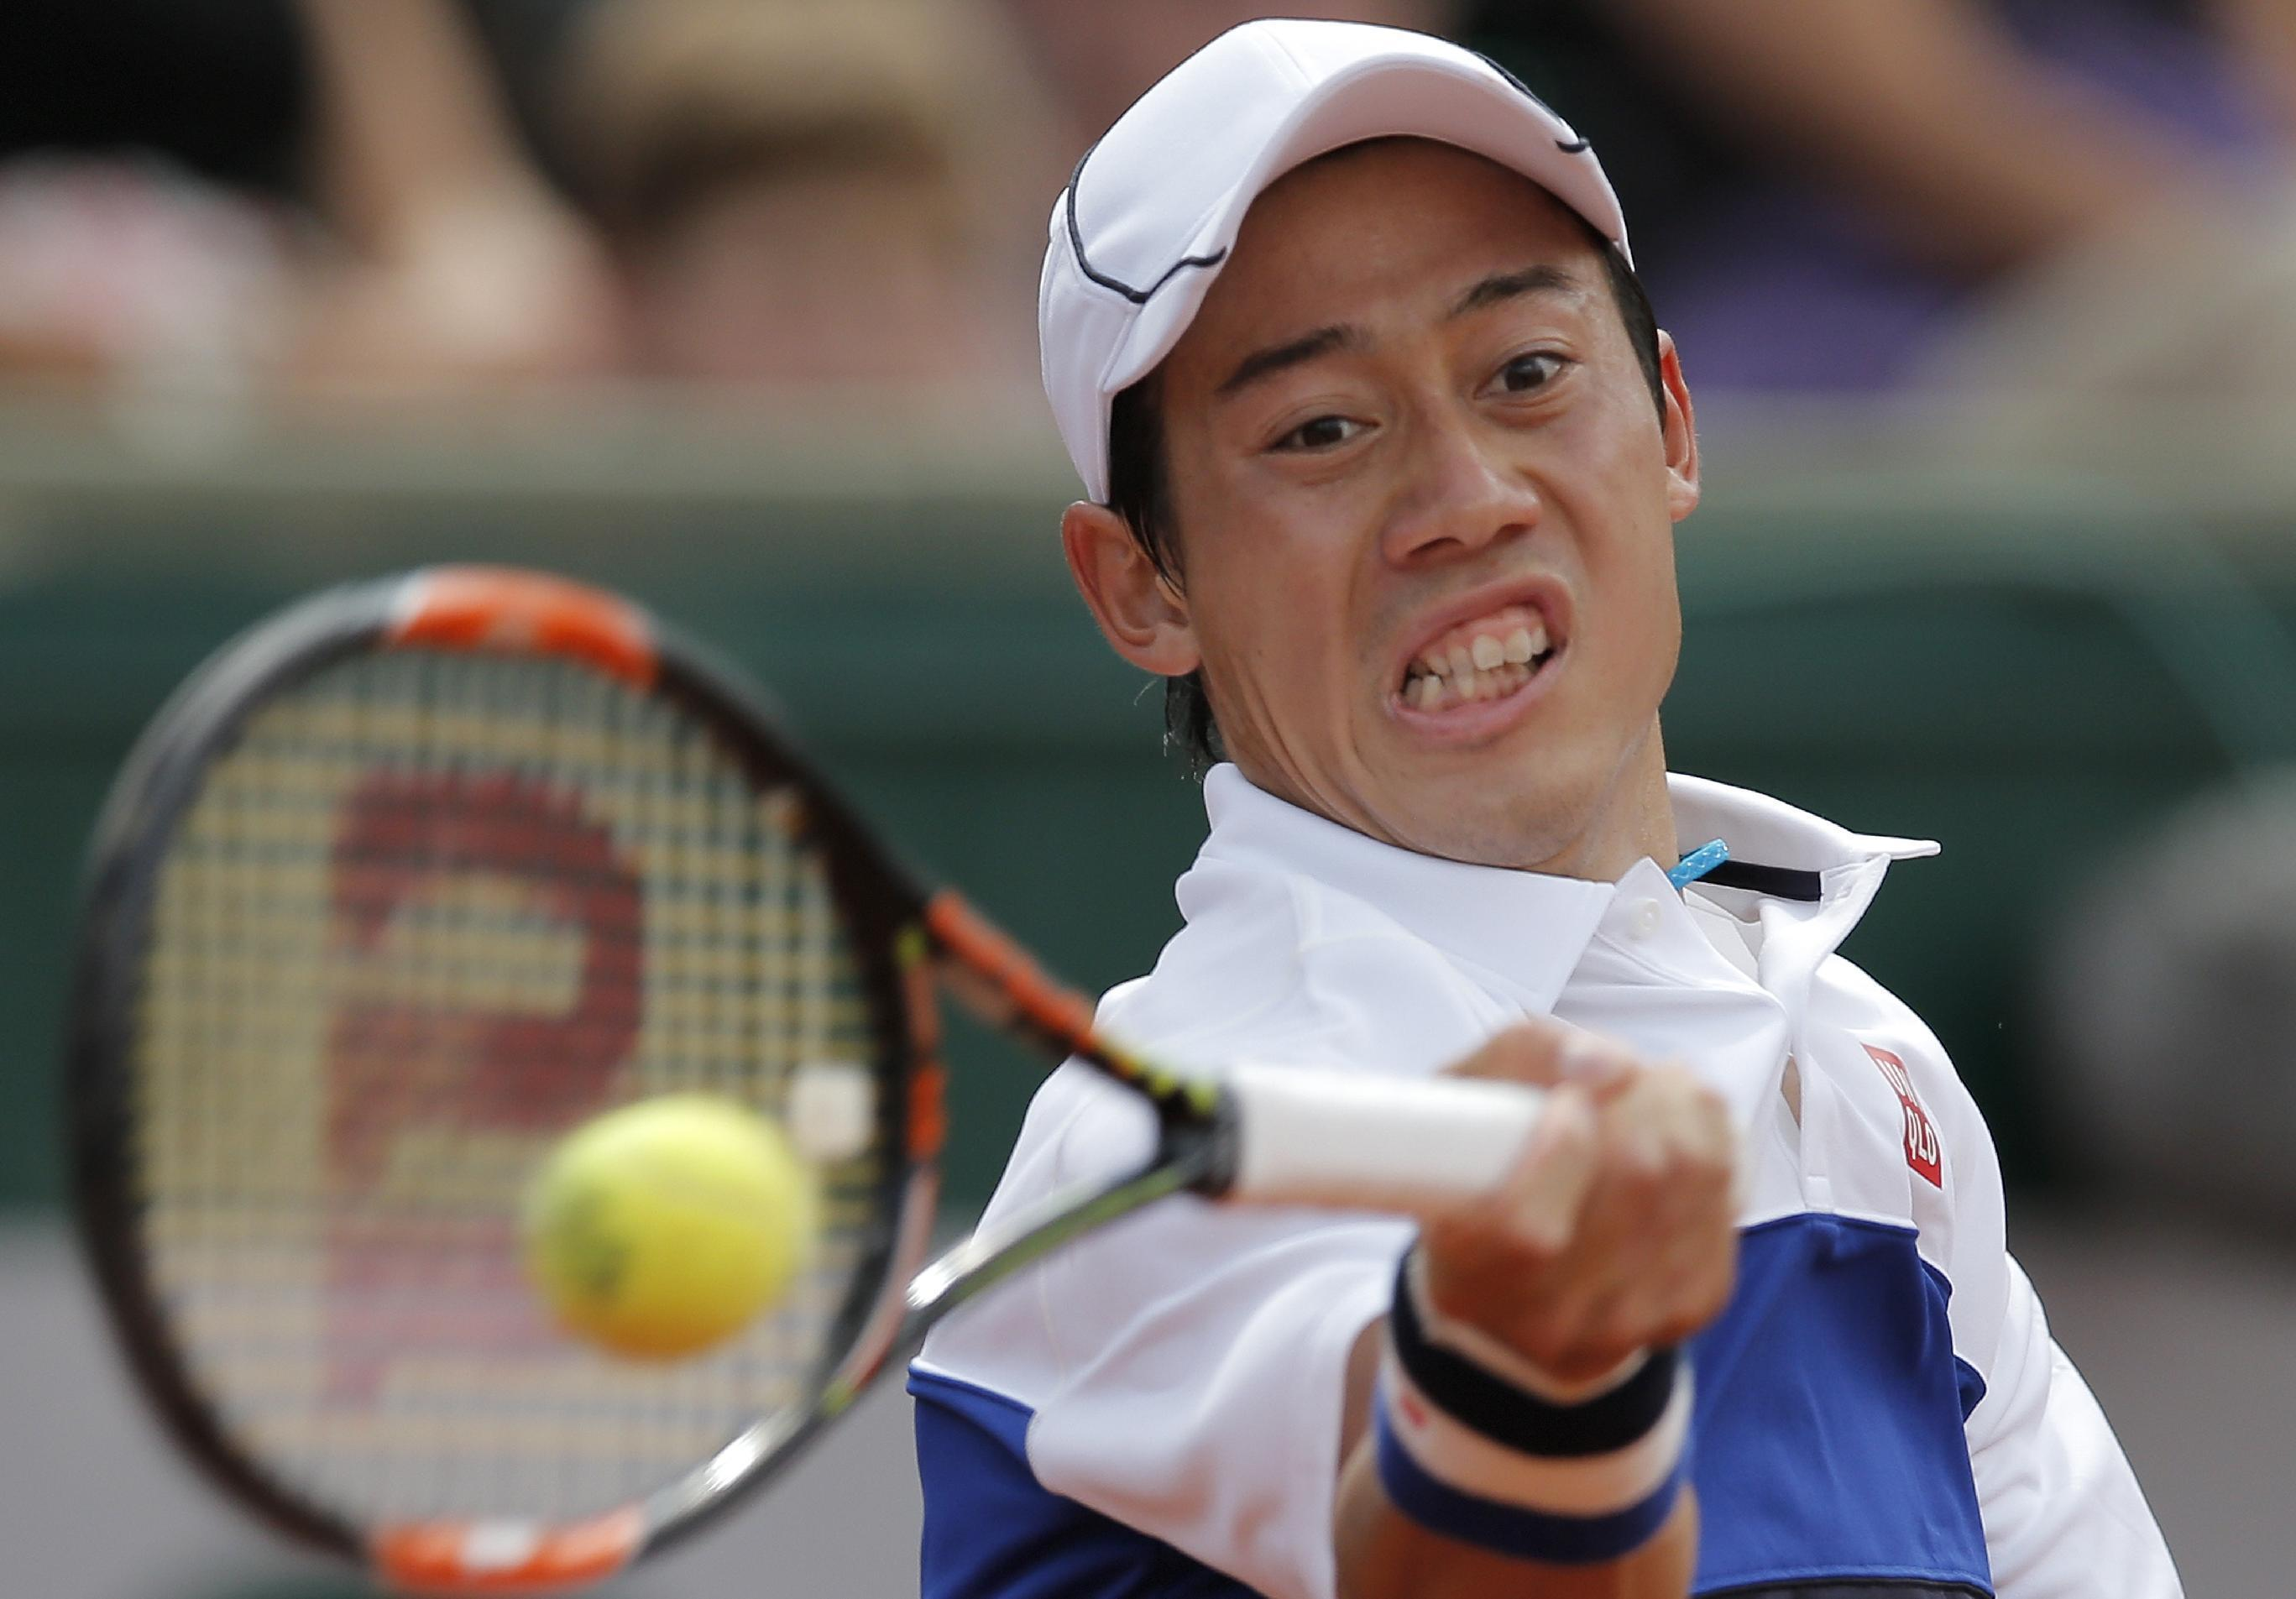 Nishikori off to strong start at French Open